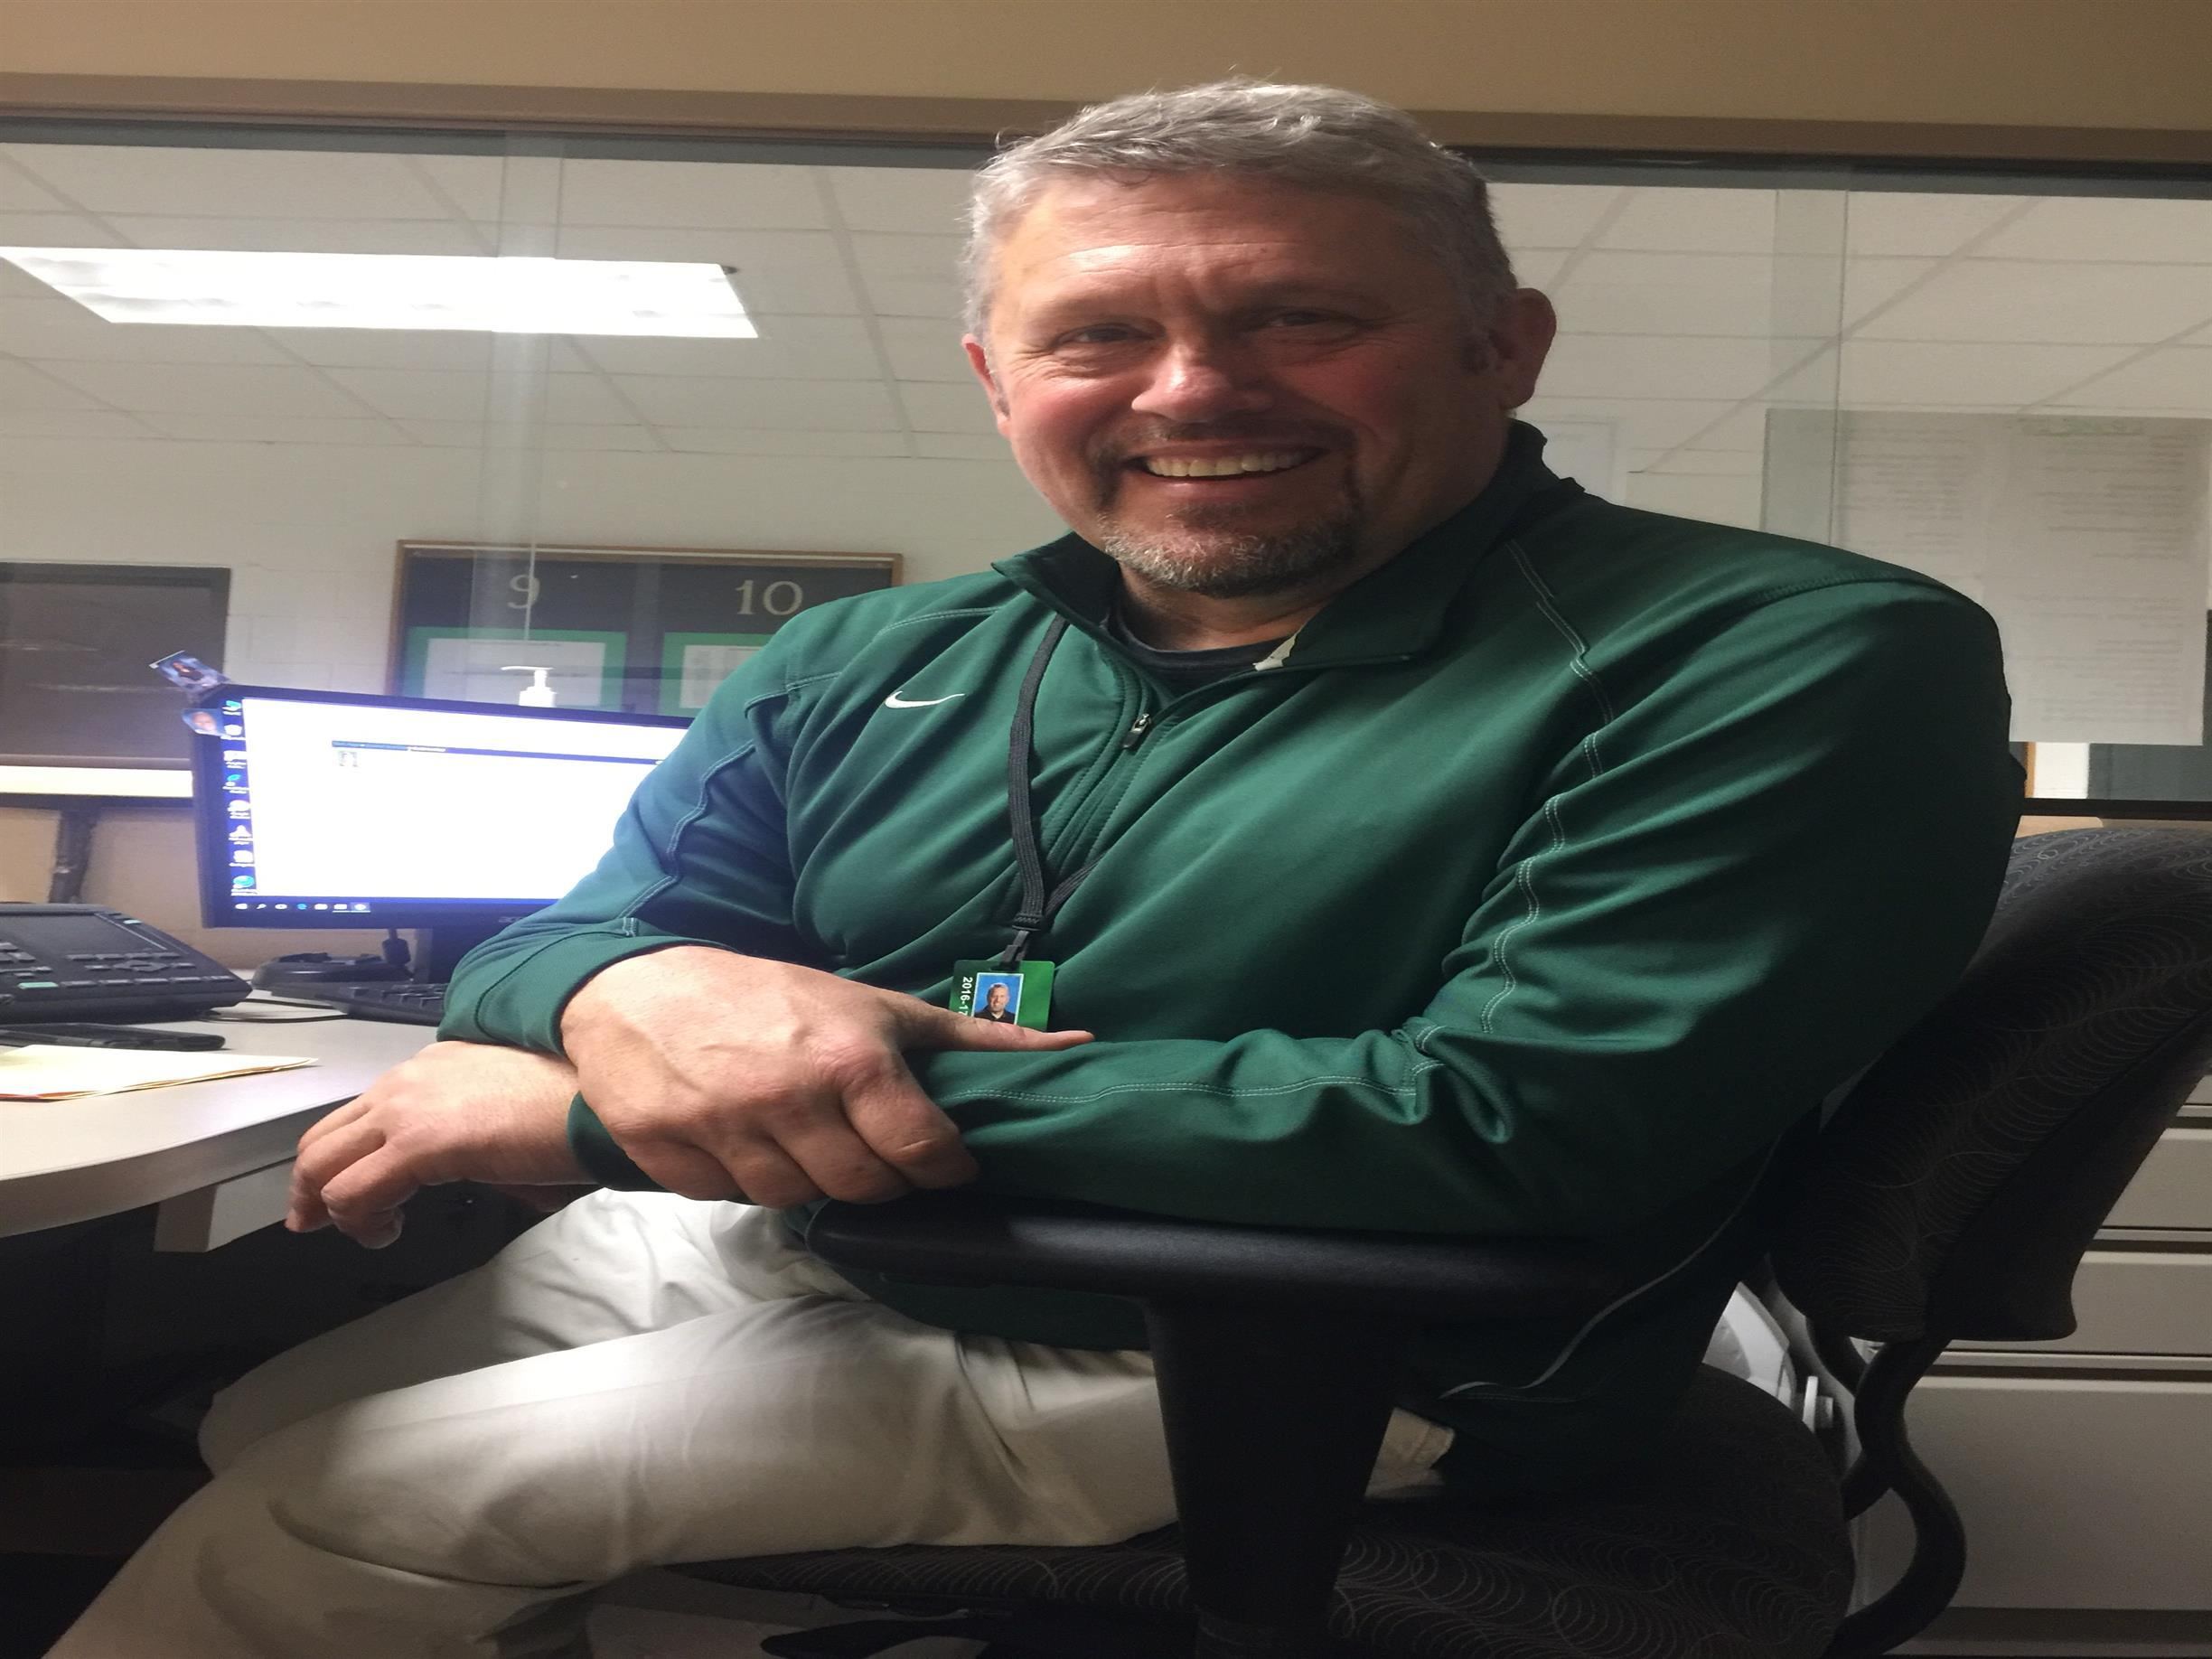 Safety liaison Daane Spielmaker has a Hall of Fame background